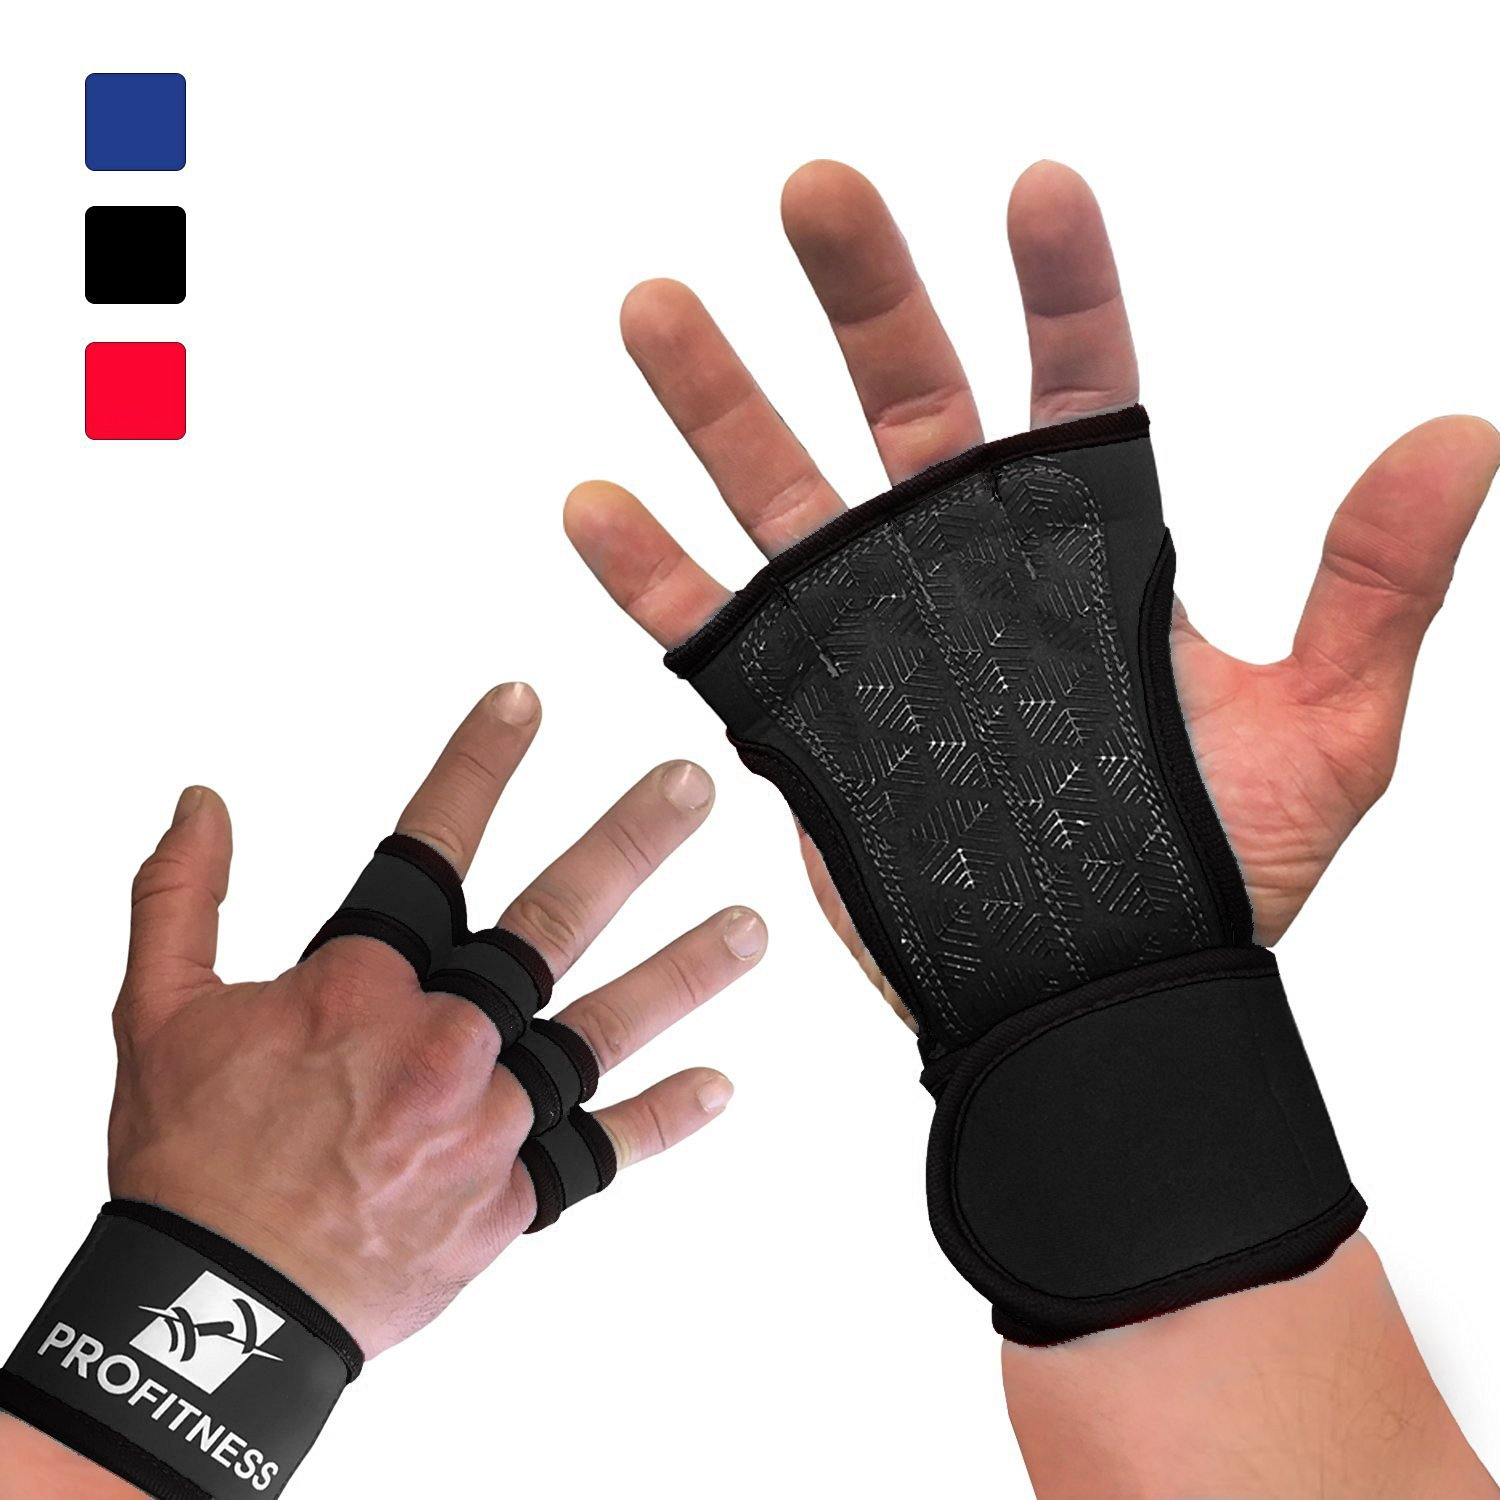 ProFitness Cross Training Gloves Non-Slip Palm Silicone Weight Lifting Glove  to Avoid Calluses |